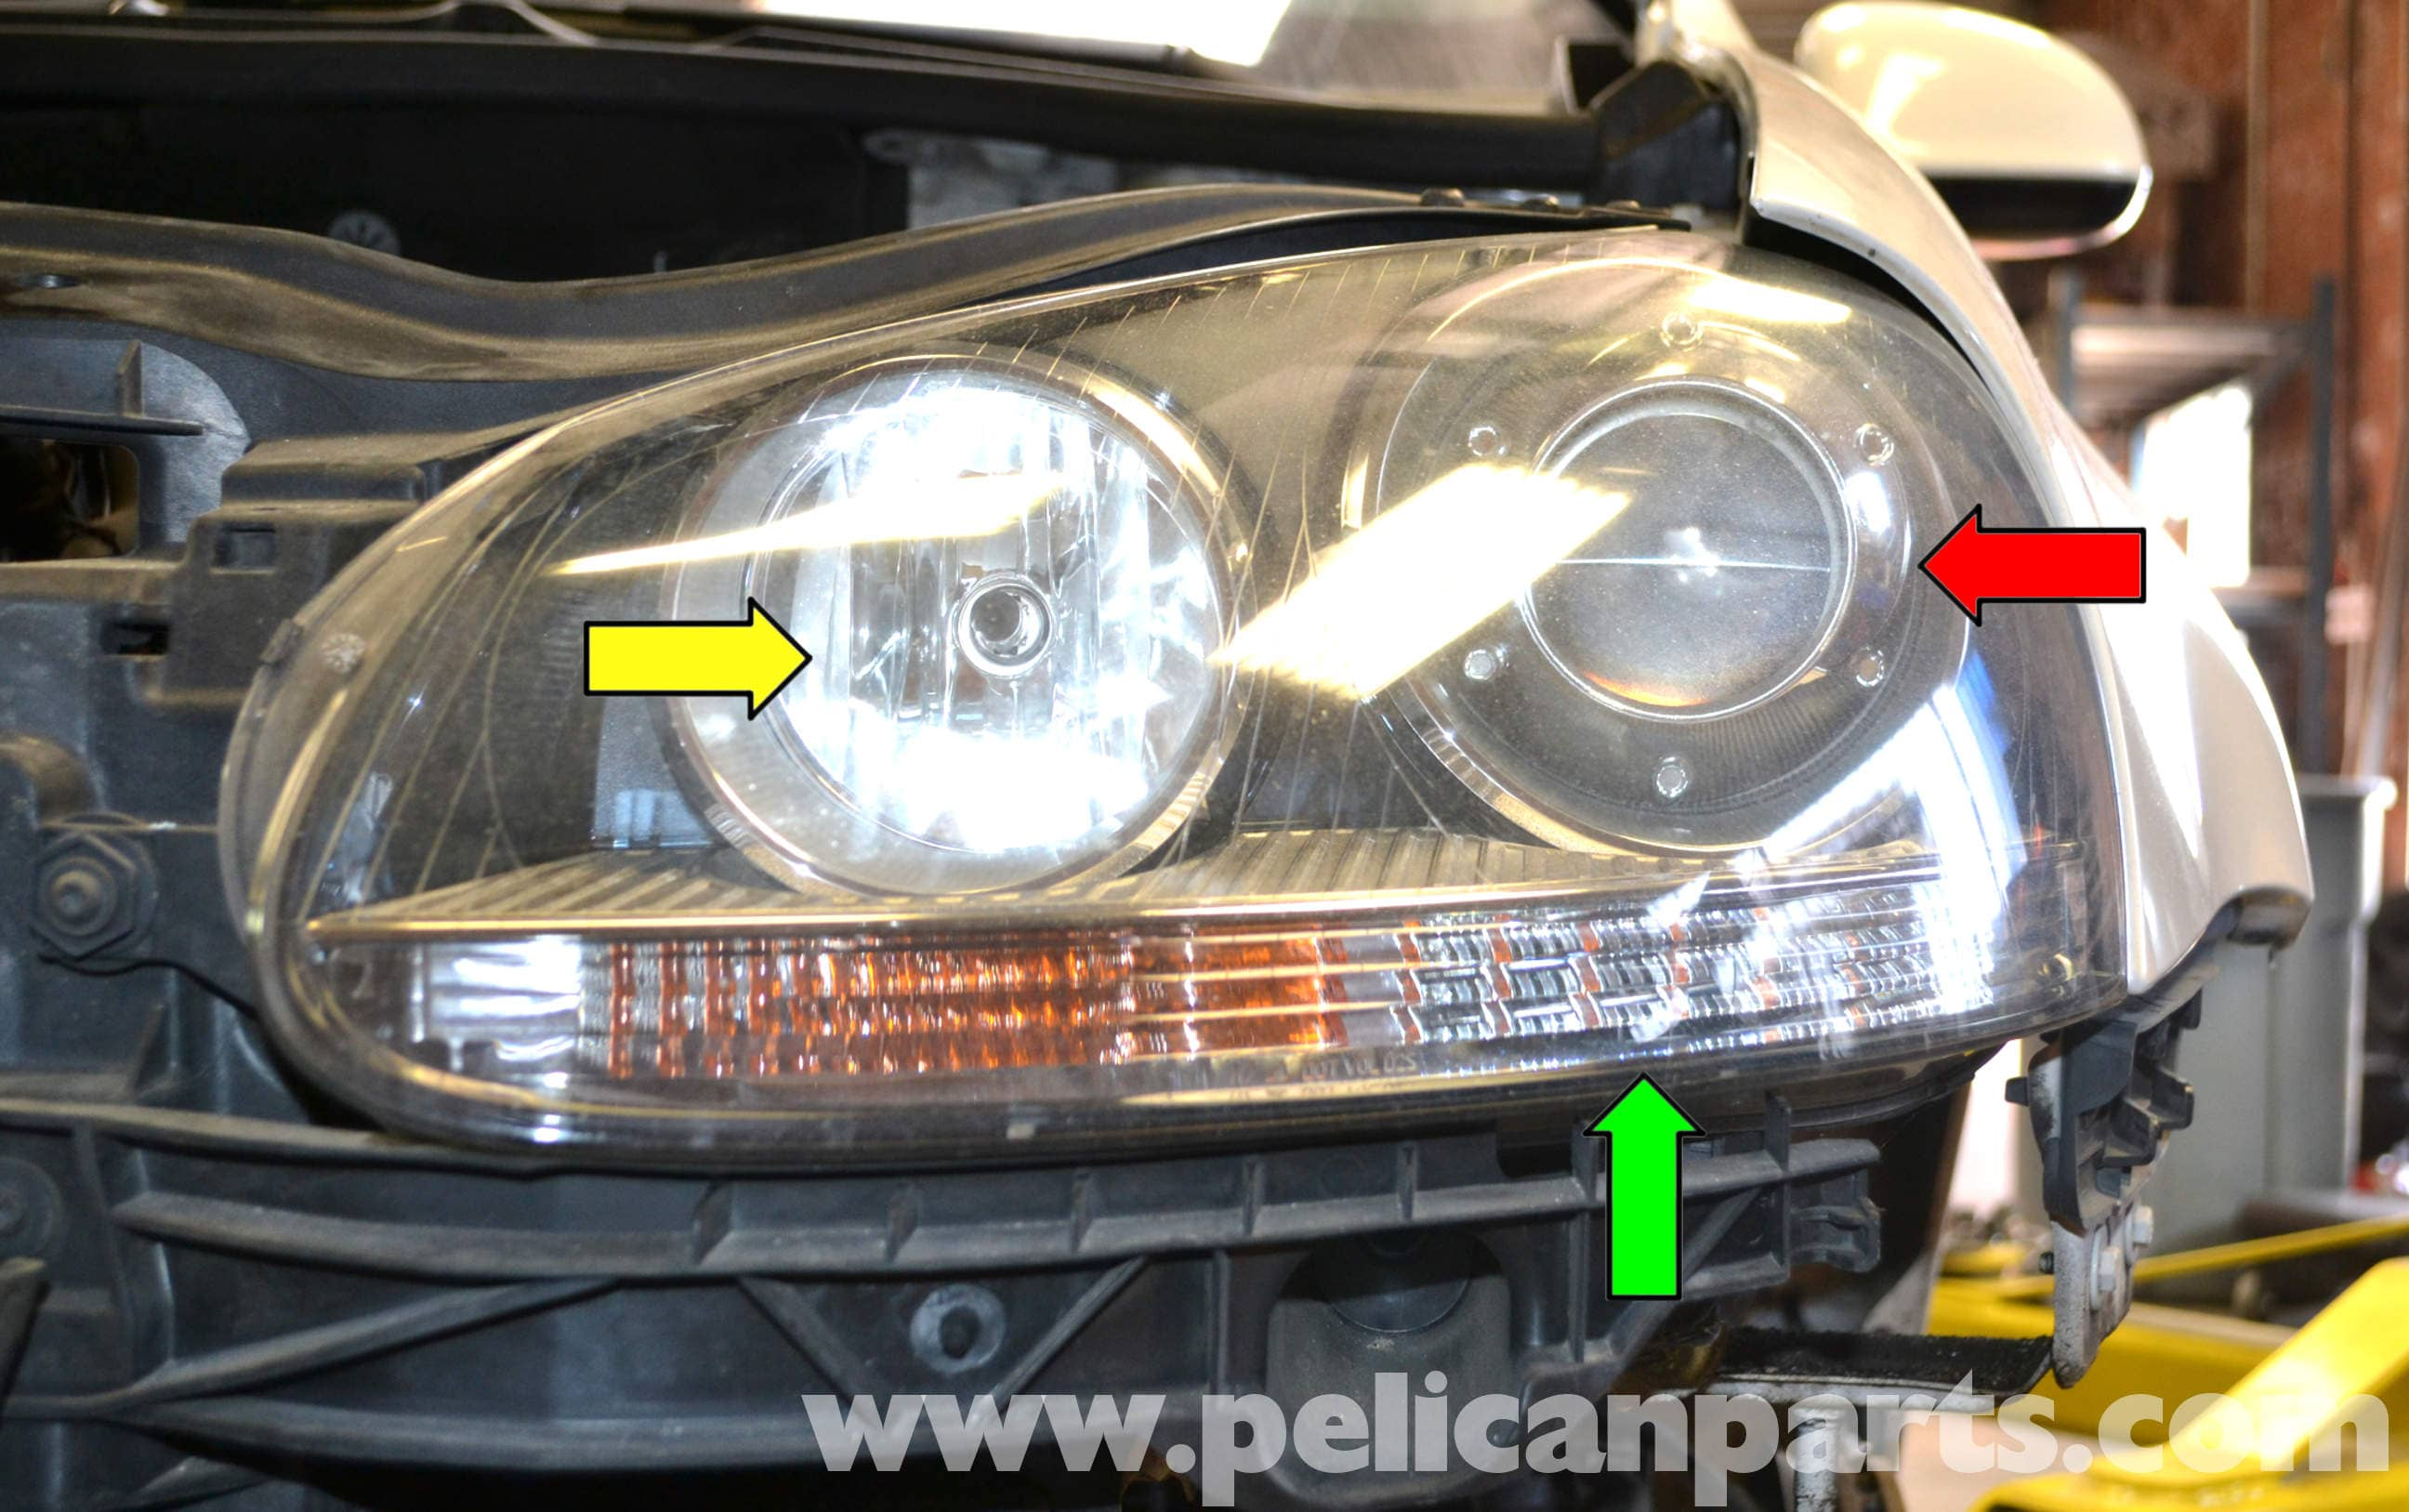 volkswagen caddy wiring diagram cat5 poe golf gti mk v headlight bulb and assembly replacement (2006-2009) - pelican parts diy ...